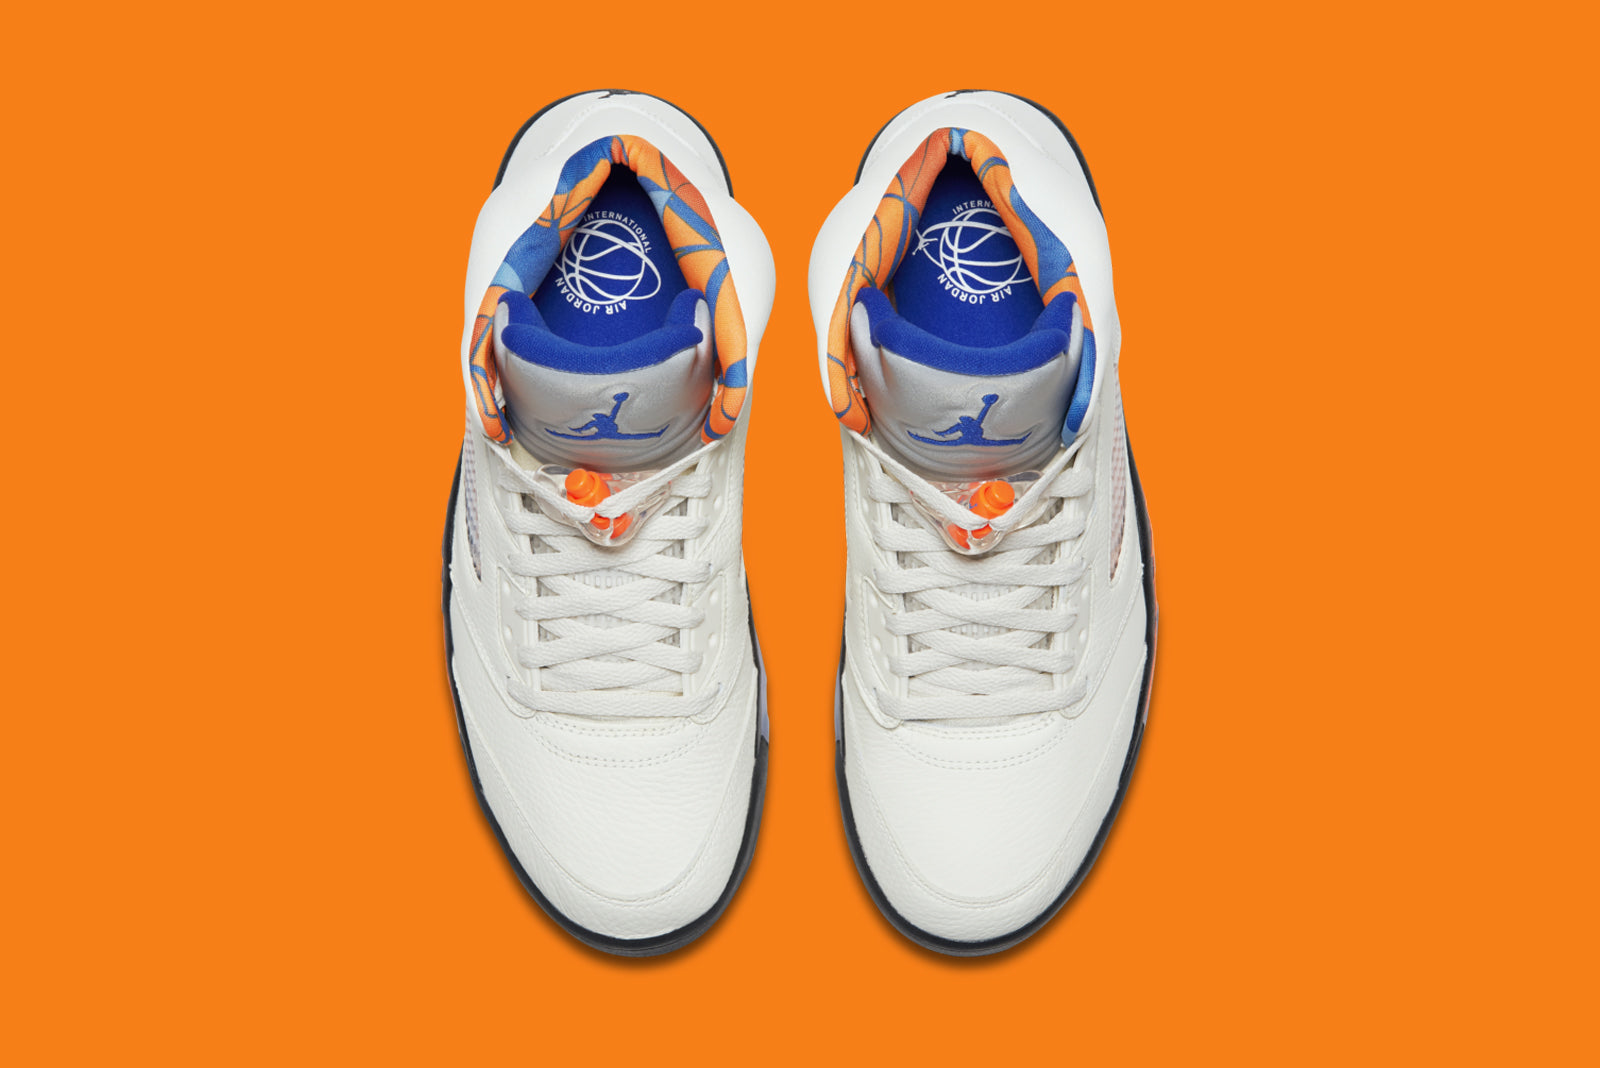 16b40718324050 Nike Air Jordan 5 Retro 136027-148. SAIL RACER BLUE-CONE-BLACK Price   £165.00. Launch  Saturday 4th of August ONLINE  08 00BST